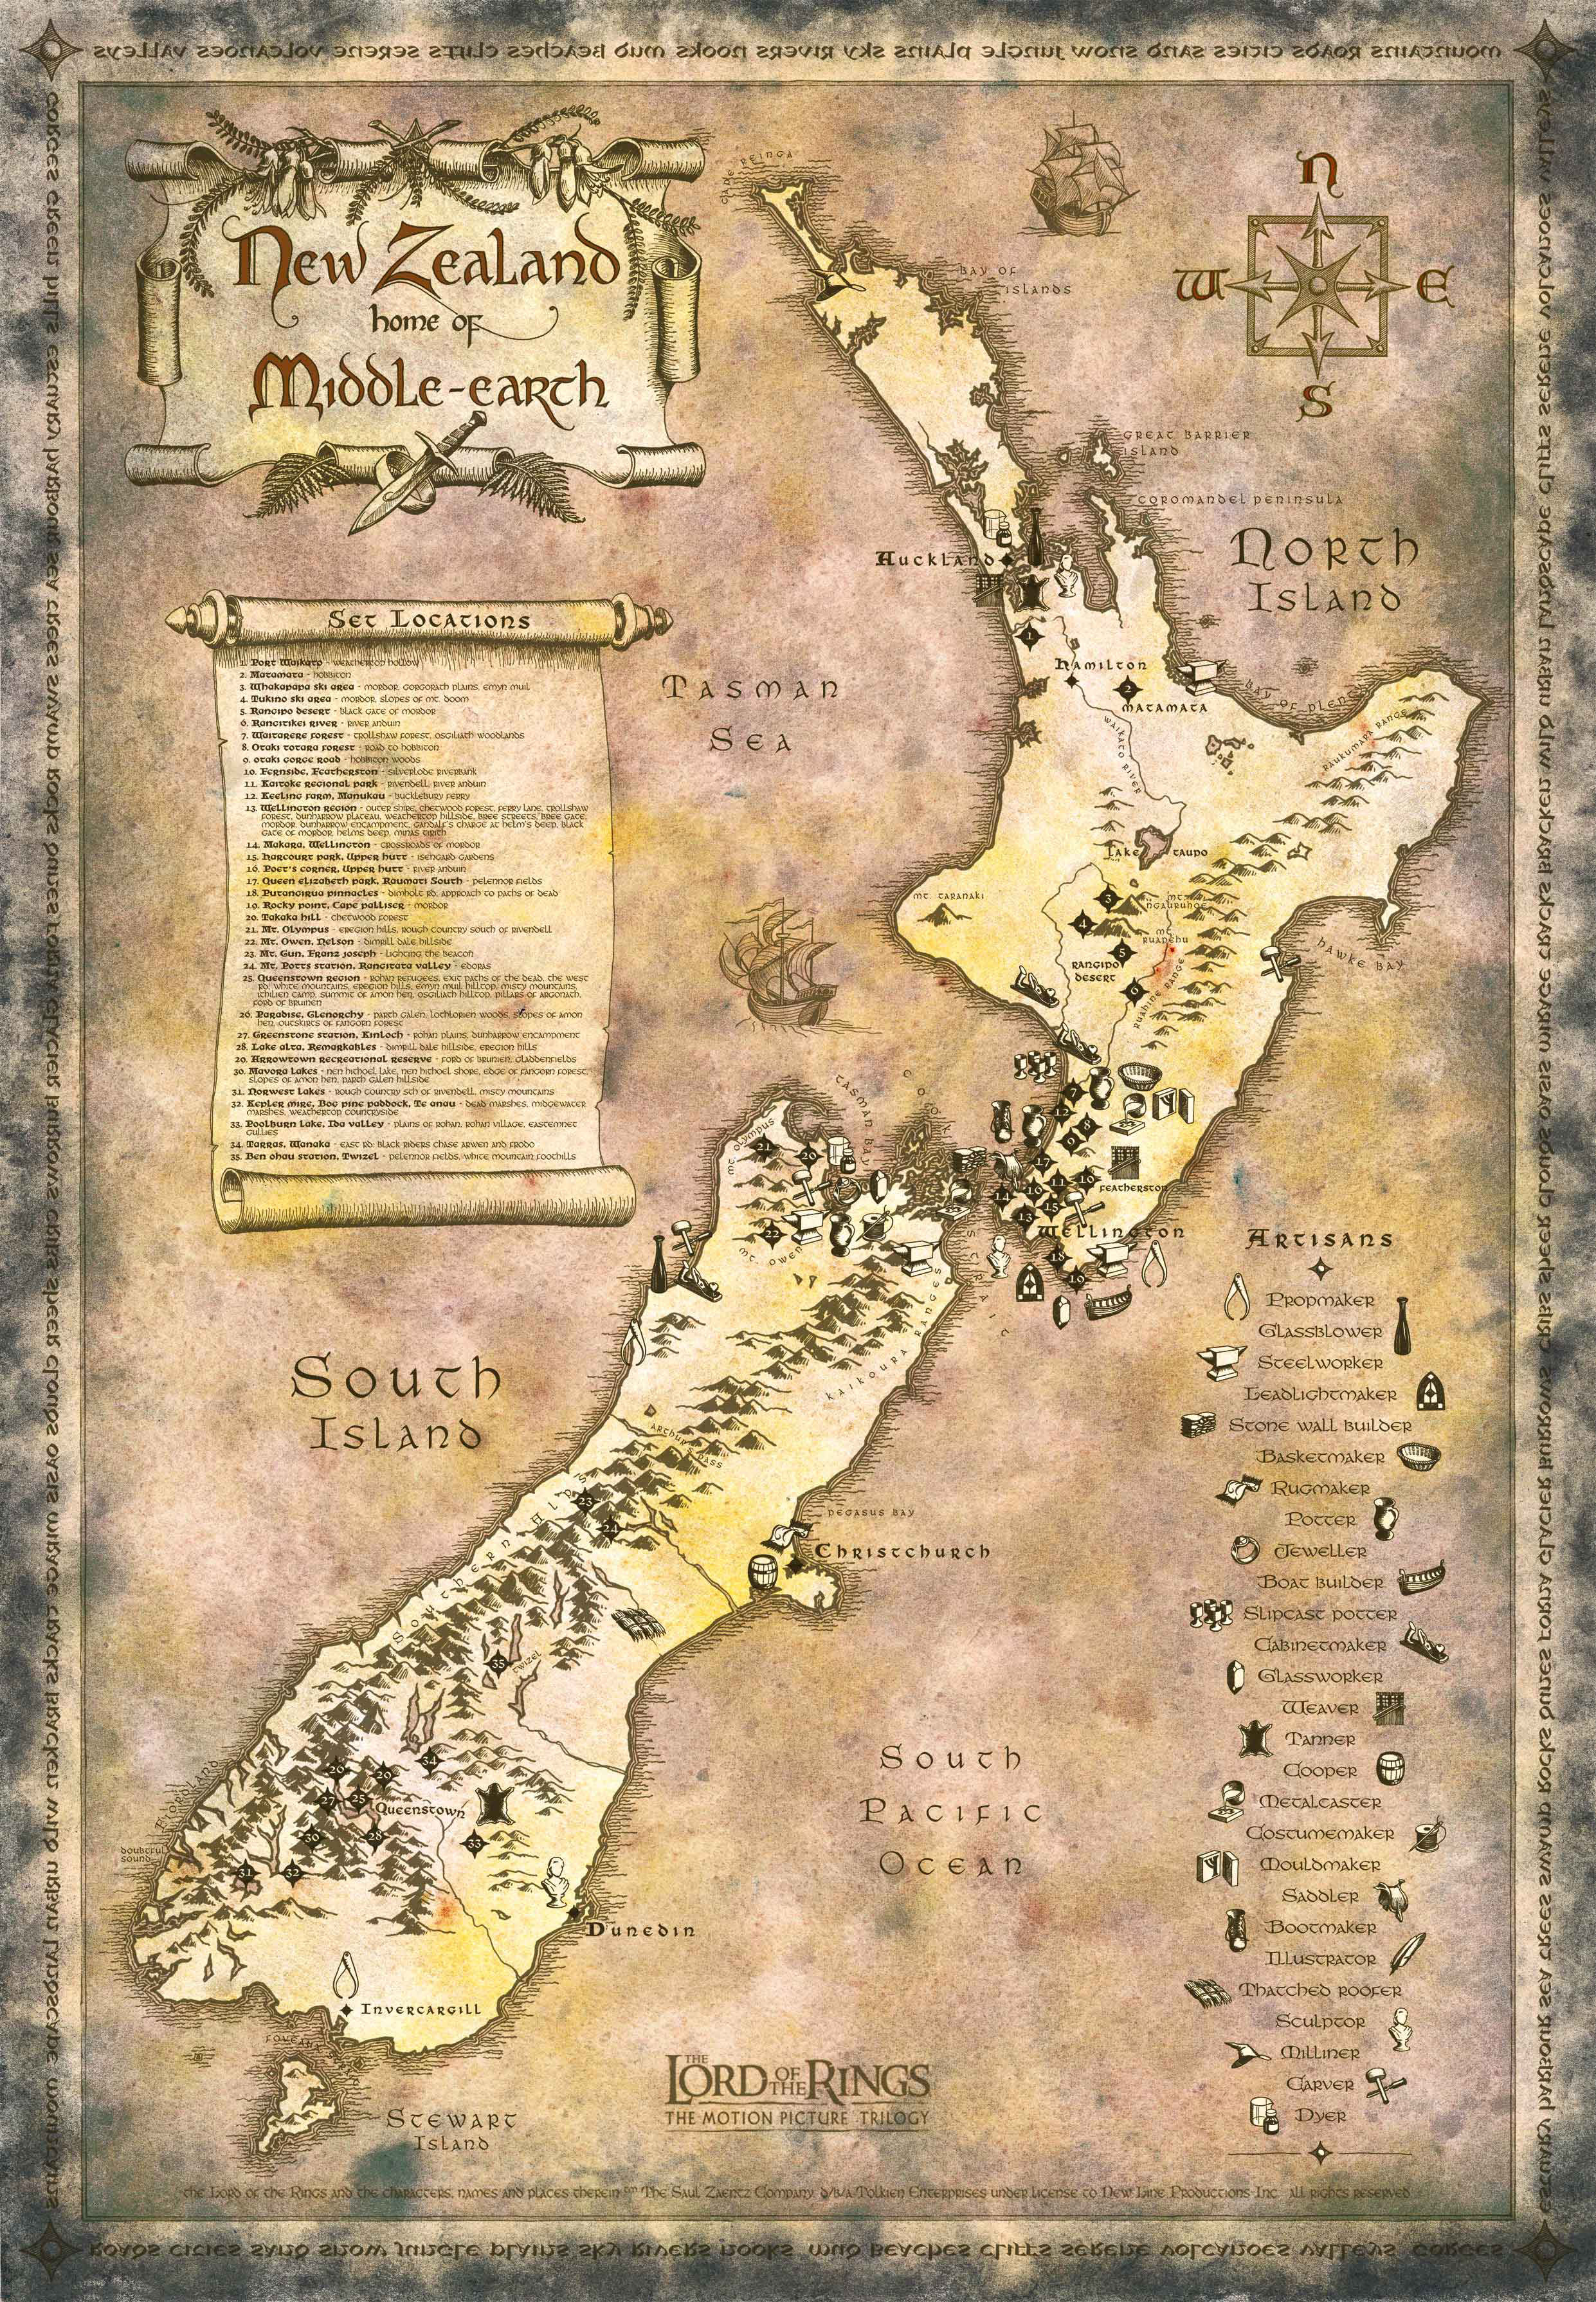 Map of Lord of the Rings filming locations